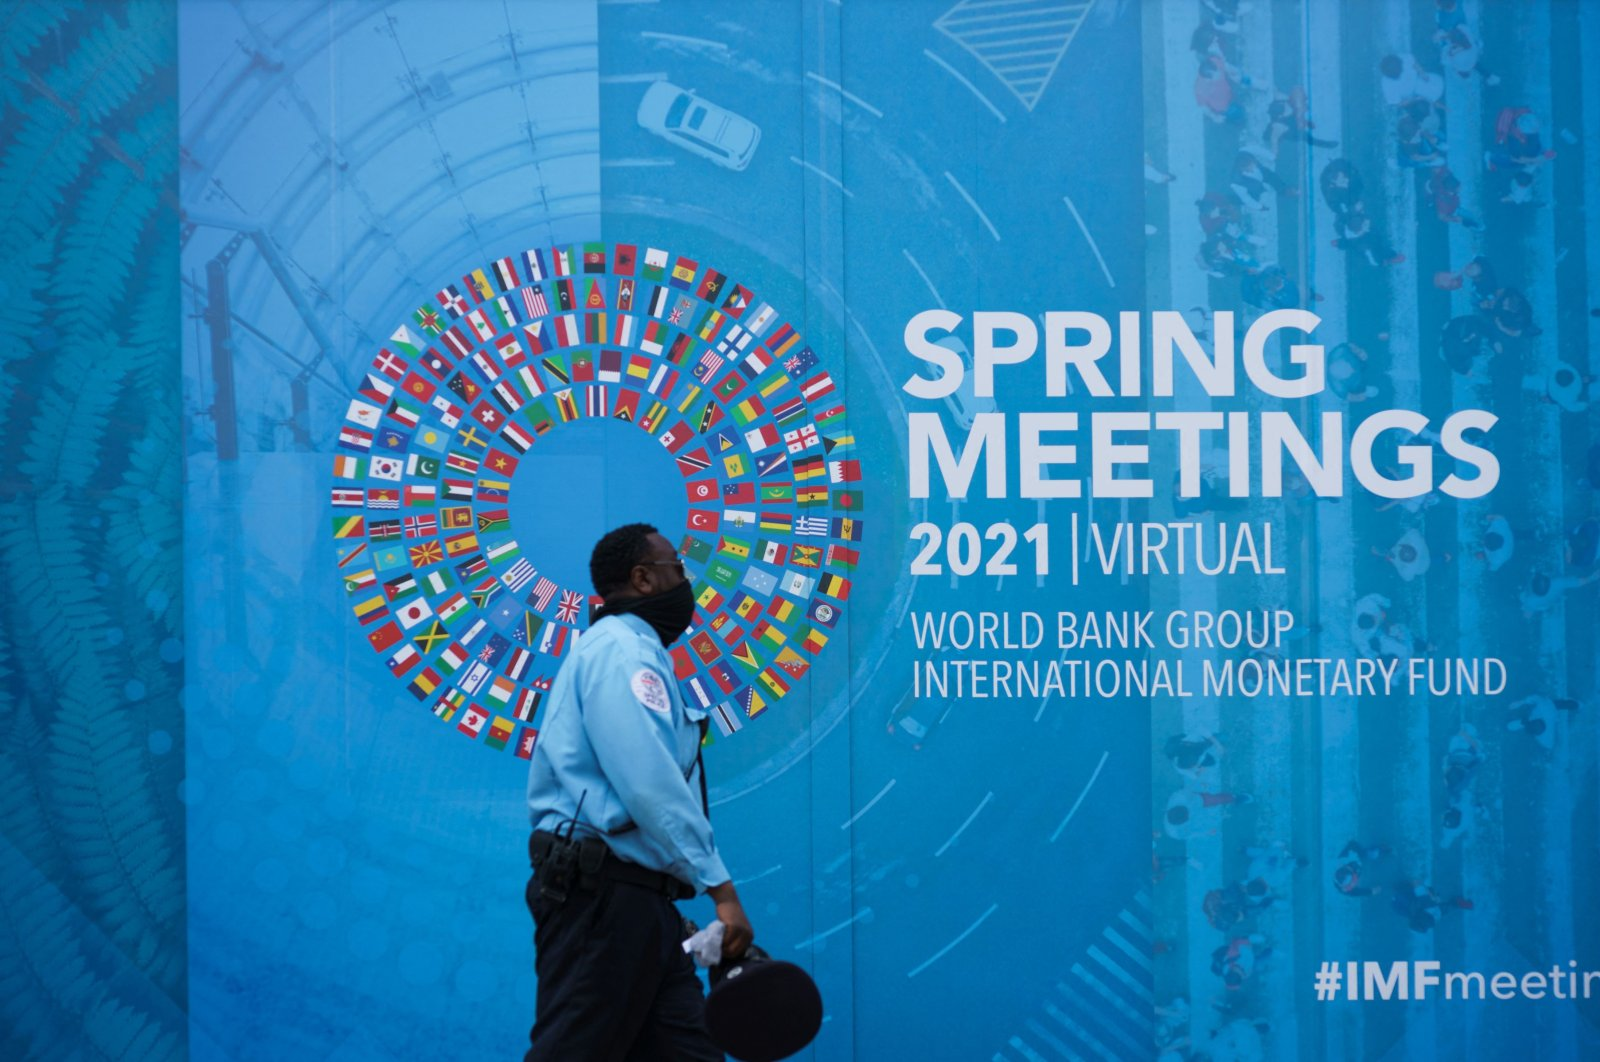 People pass by a banner for the World Bank Group/International Monetary Fund Virtual Spring Meetings in Washington, D.C., the U.S., April 7, 2021. (AFP Photo)